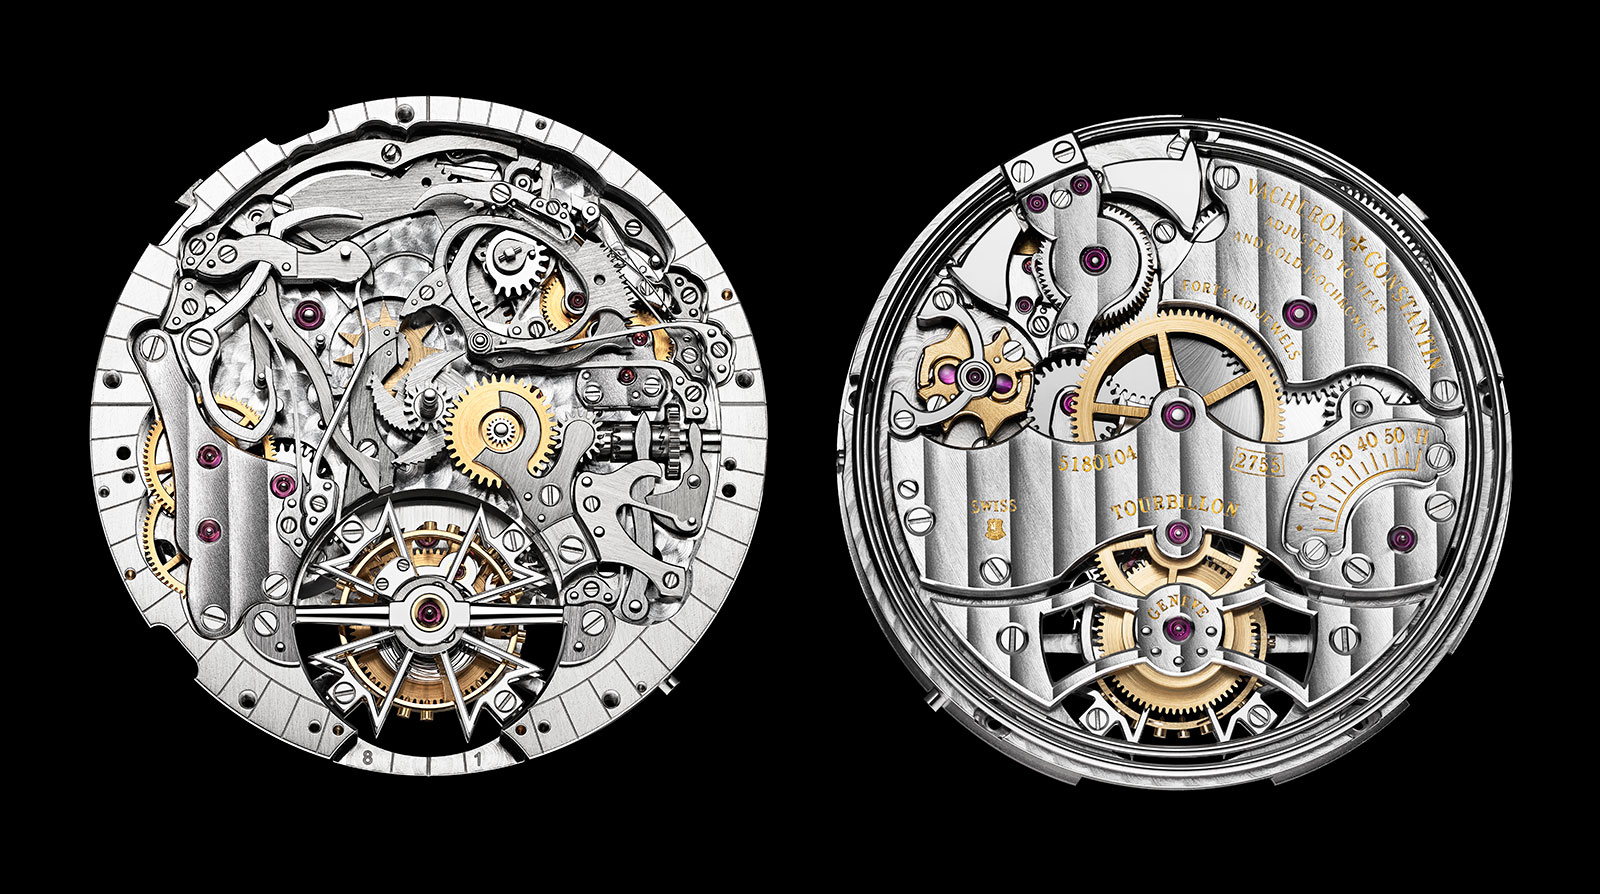 Vacheron-Constantin-Traditionnelle-Minute-Repeater-Tourbillon-5.jpg